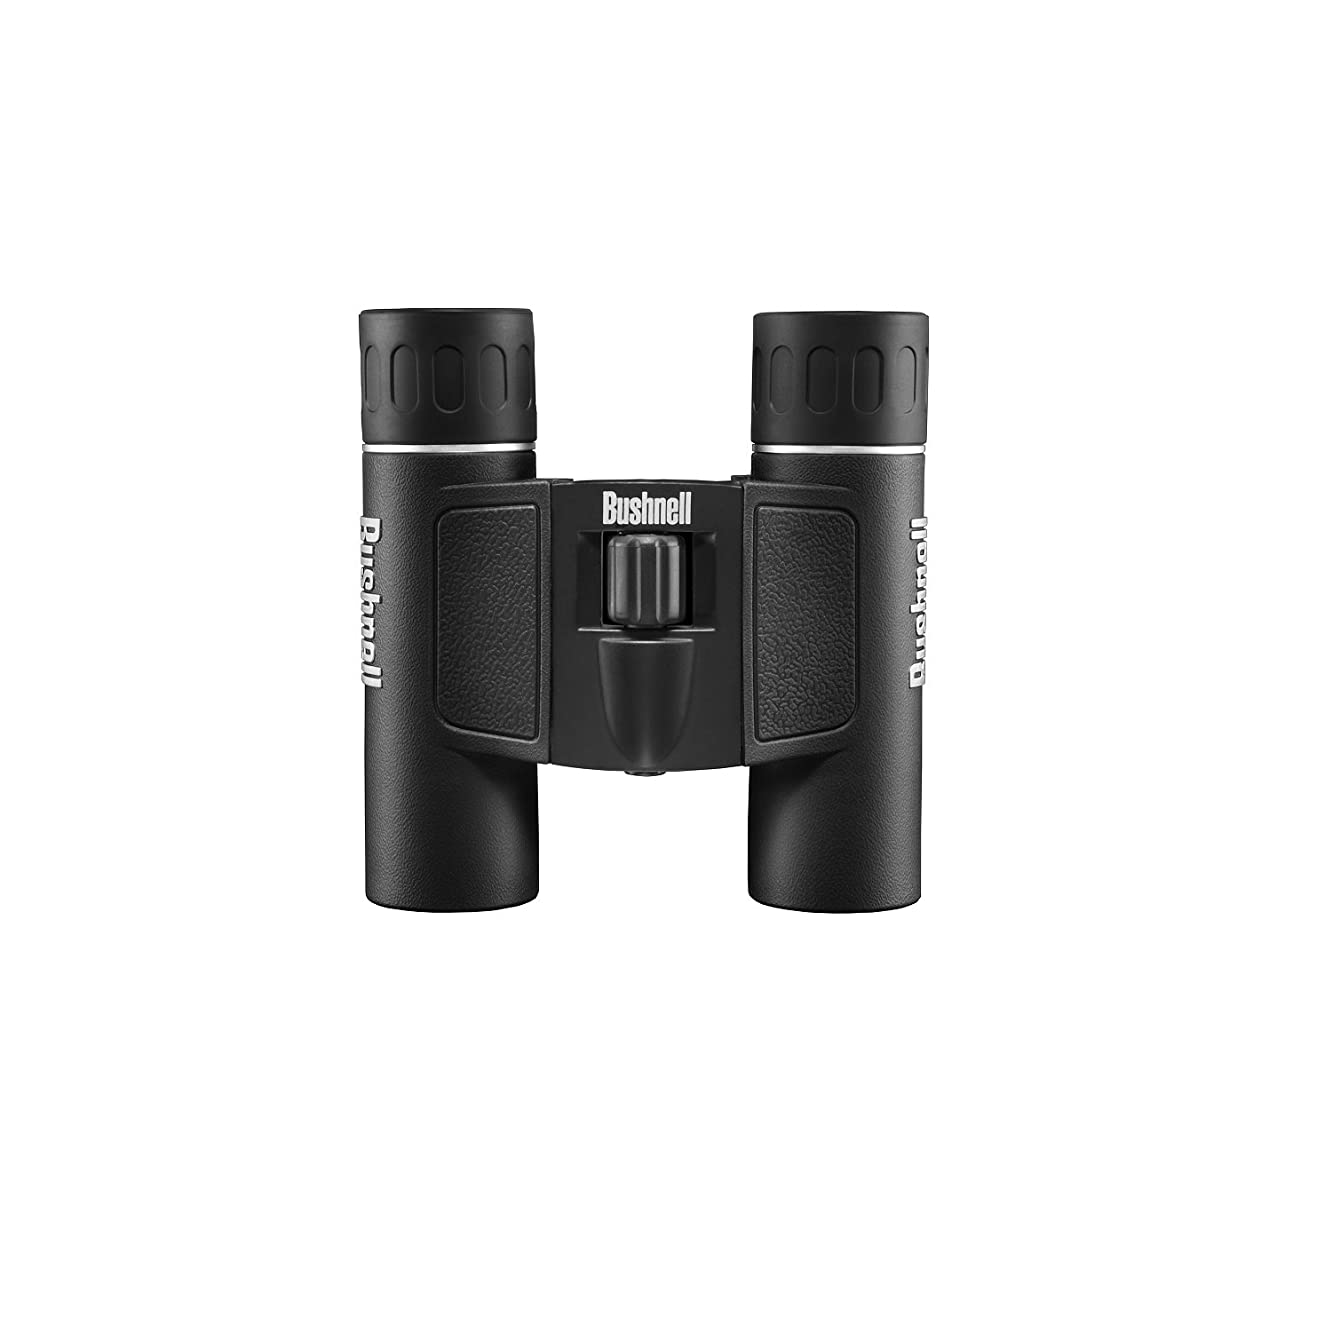 Bushnell Powerview 12x25 Compact Binoculars Color: Black